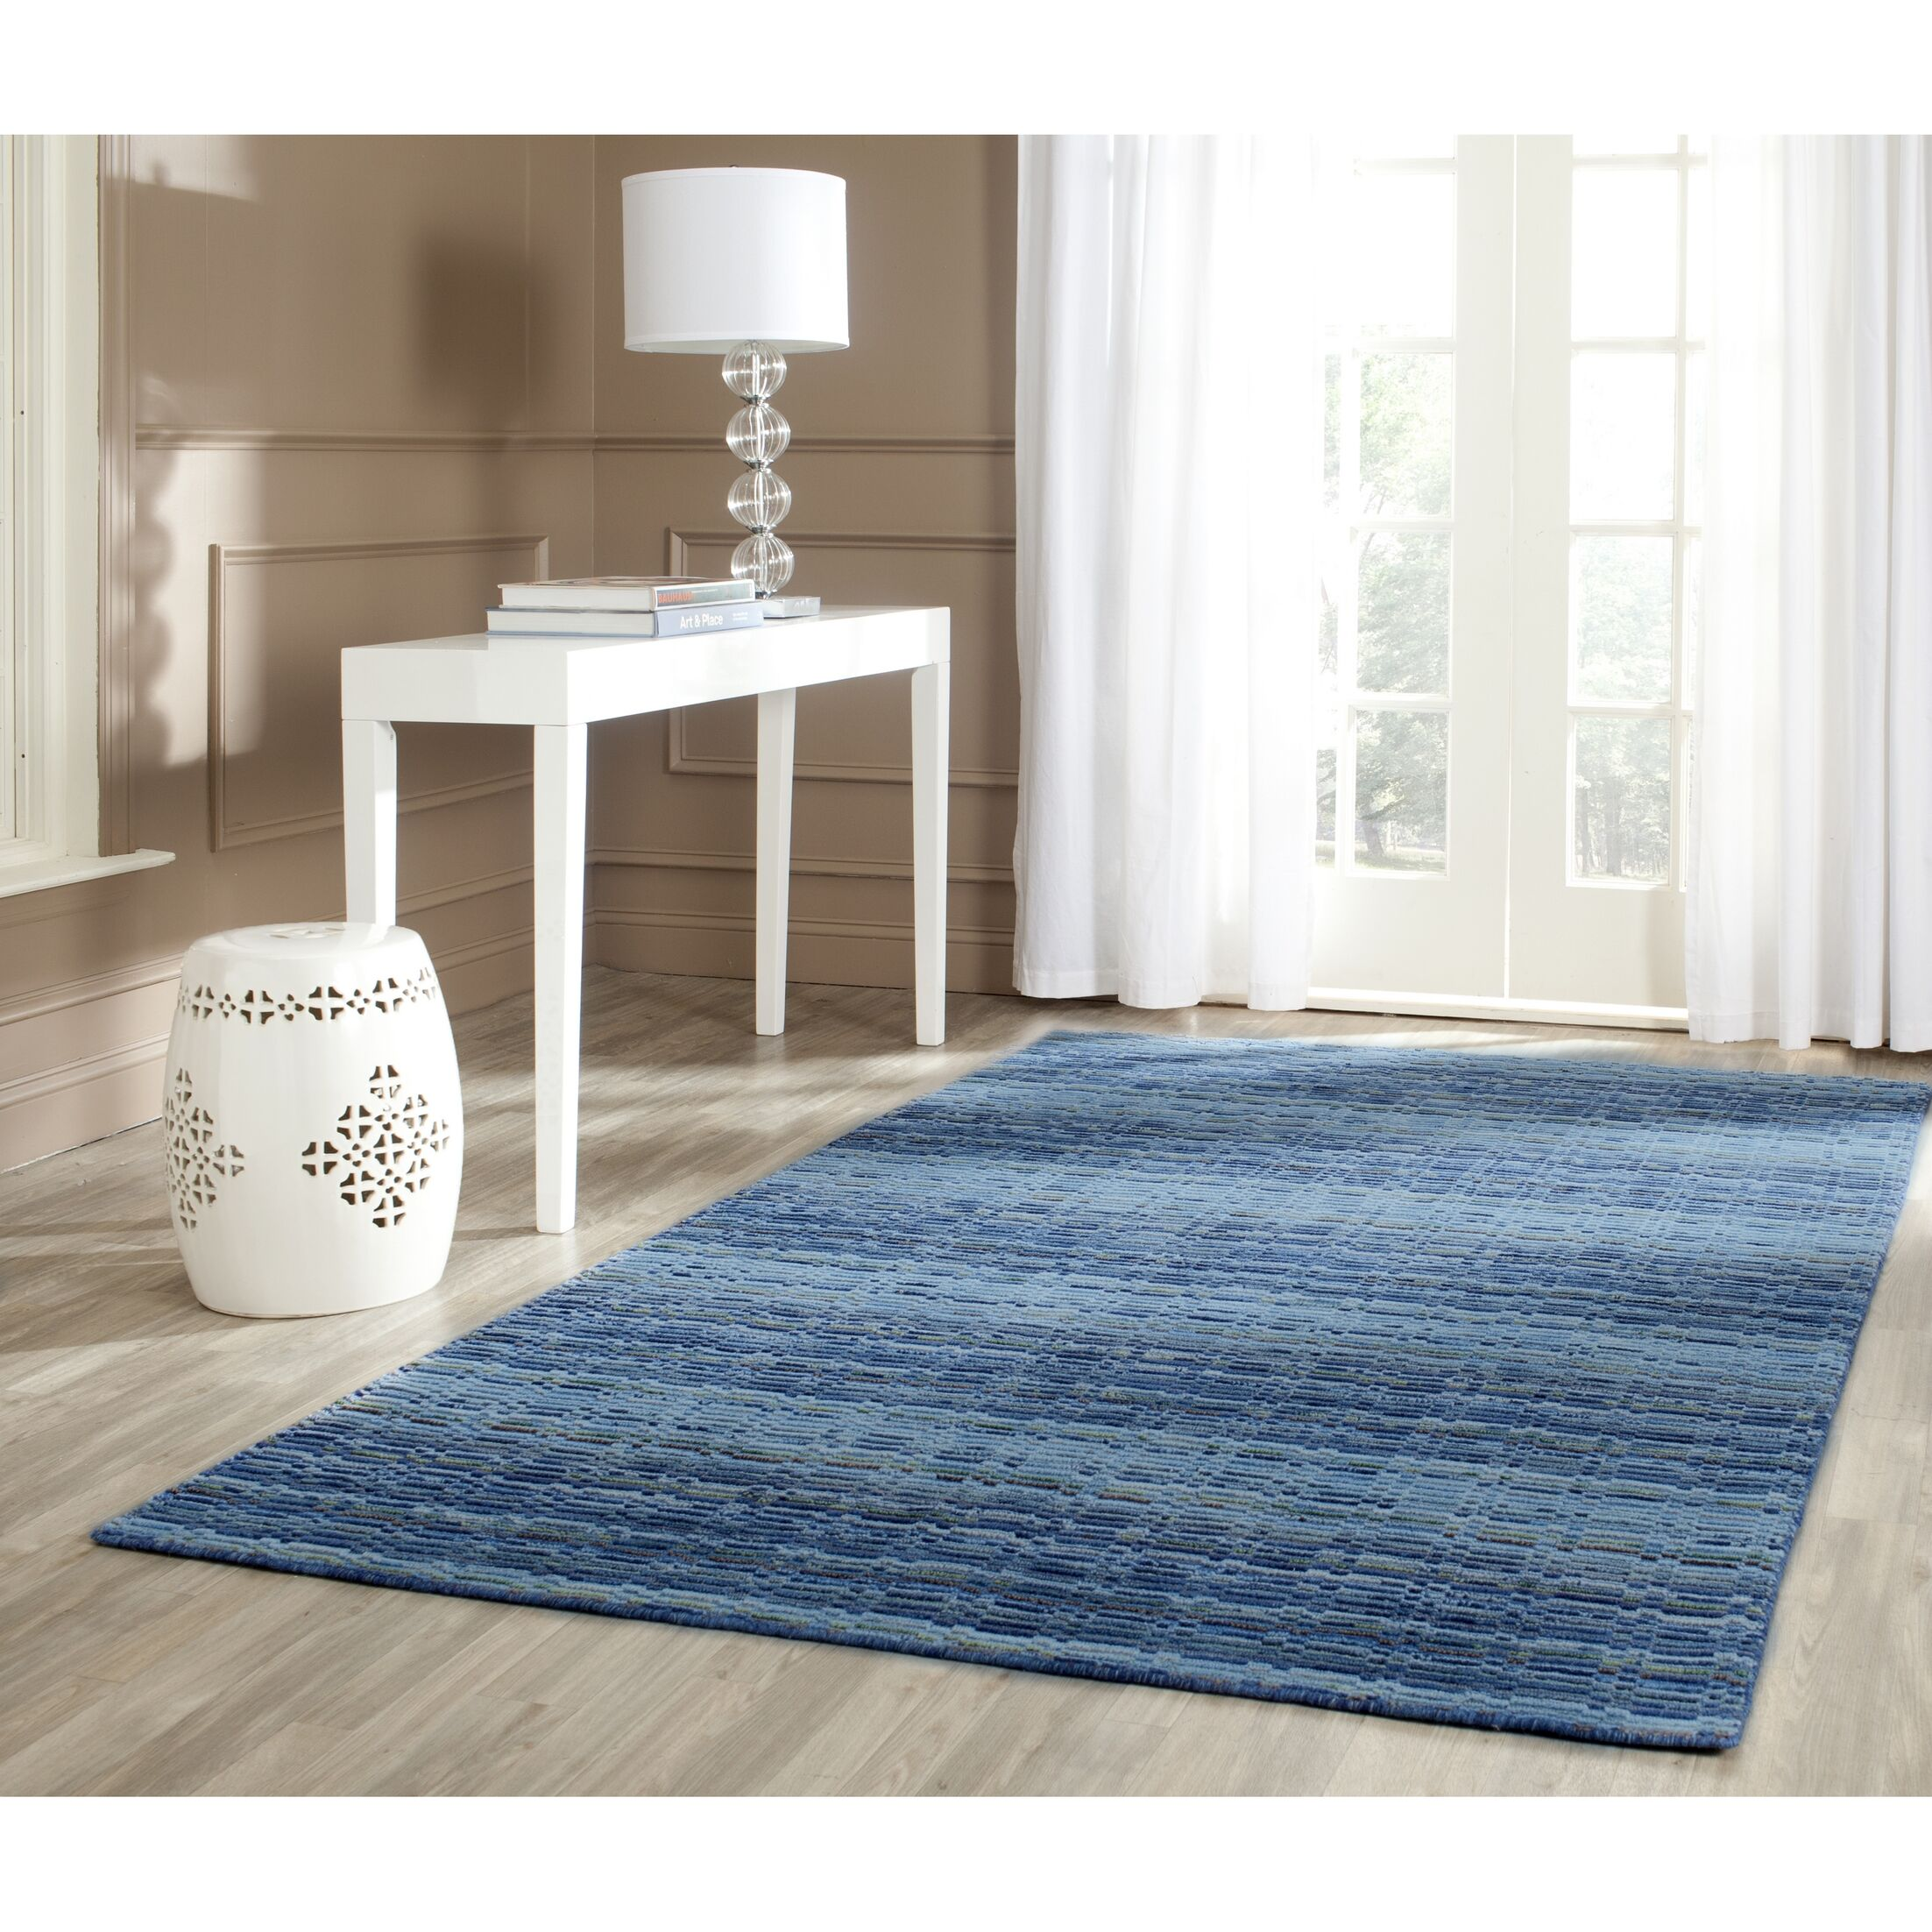 Sherri Hand-Woven Wool Blue Area Rug Rug Size: Rectangle 4' x 6'